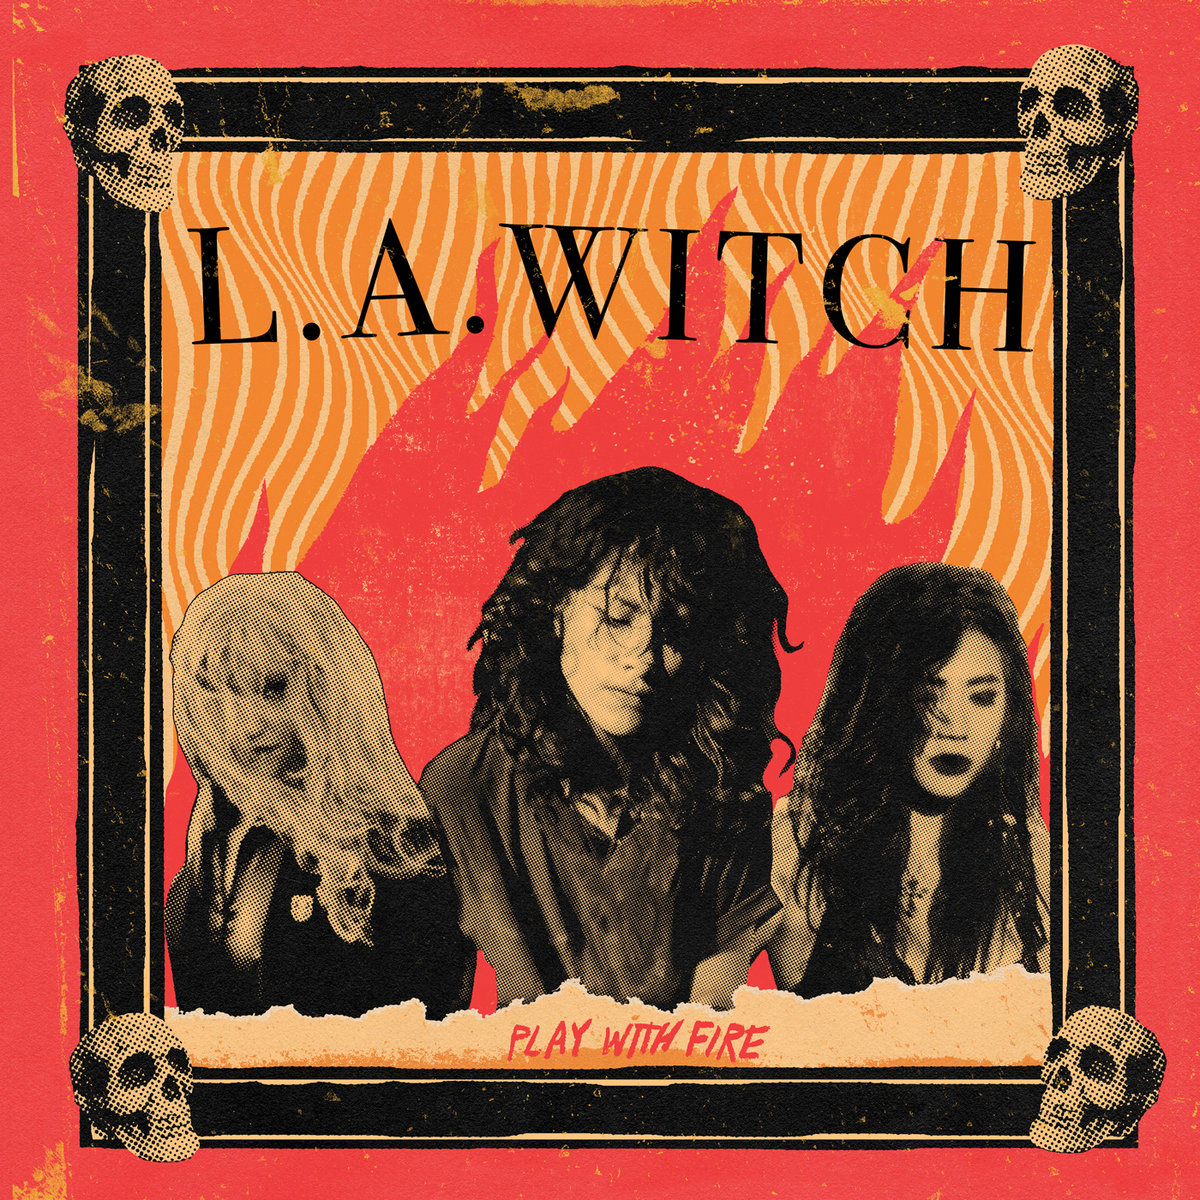 Play With Fire | L.A. WITCH